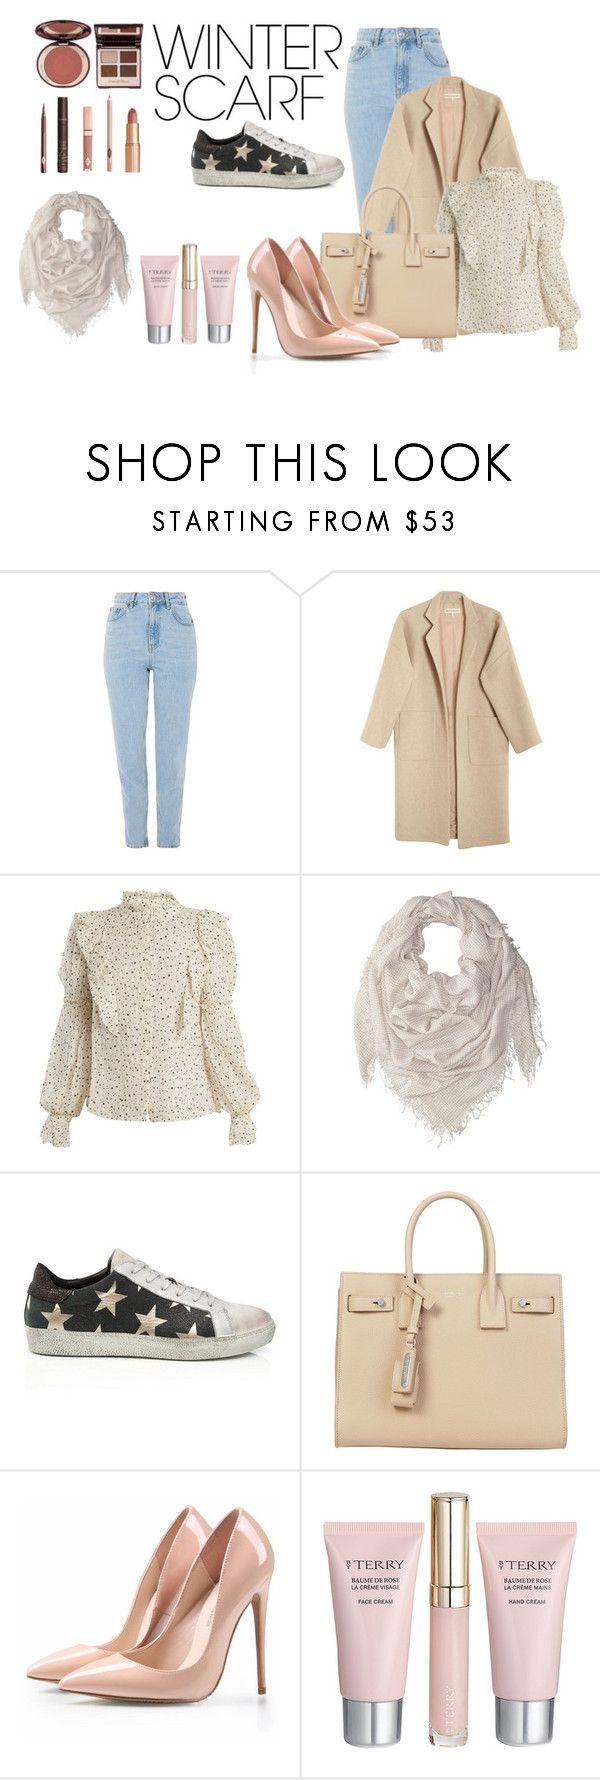 """""""ieur"""" by sunshine-189 ❤ liked on Polyvore featuring Topshop, Mara Hoffman, Rebecca Taylor, Chan Luu, Yves Saint Laurent, By Terry, Charlotte Tilbury and winterscarf"""